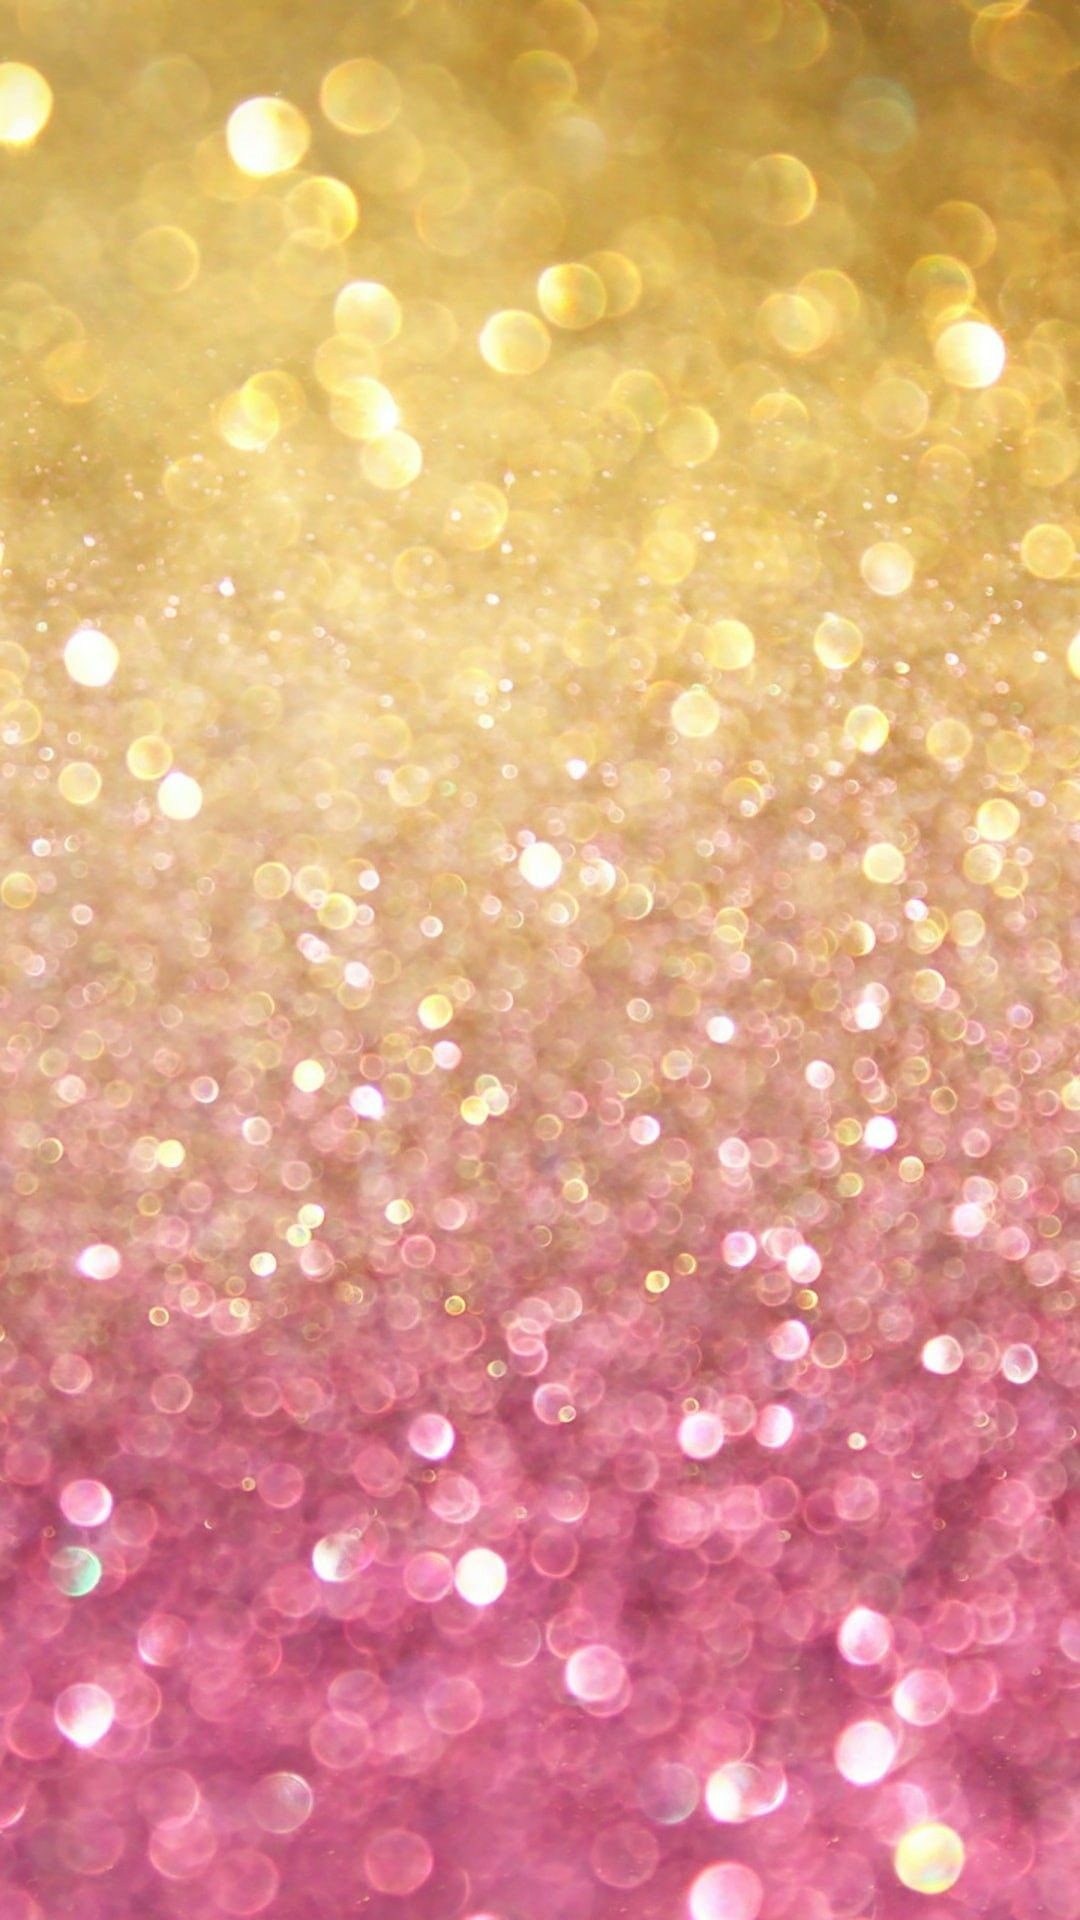 1080x1920, Erase Board, Iphone Wallpapers, Phone Backgrounds, - Pink And Gold Glitter Background - HD Wallpaper